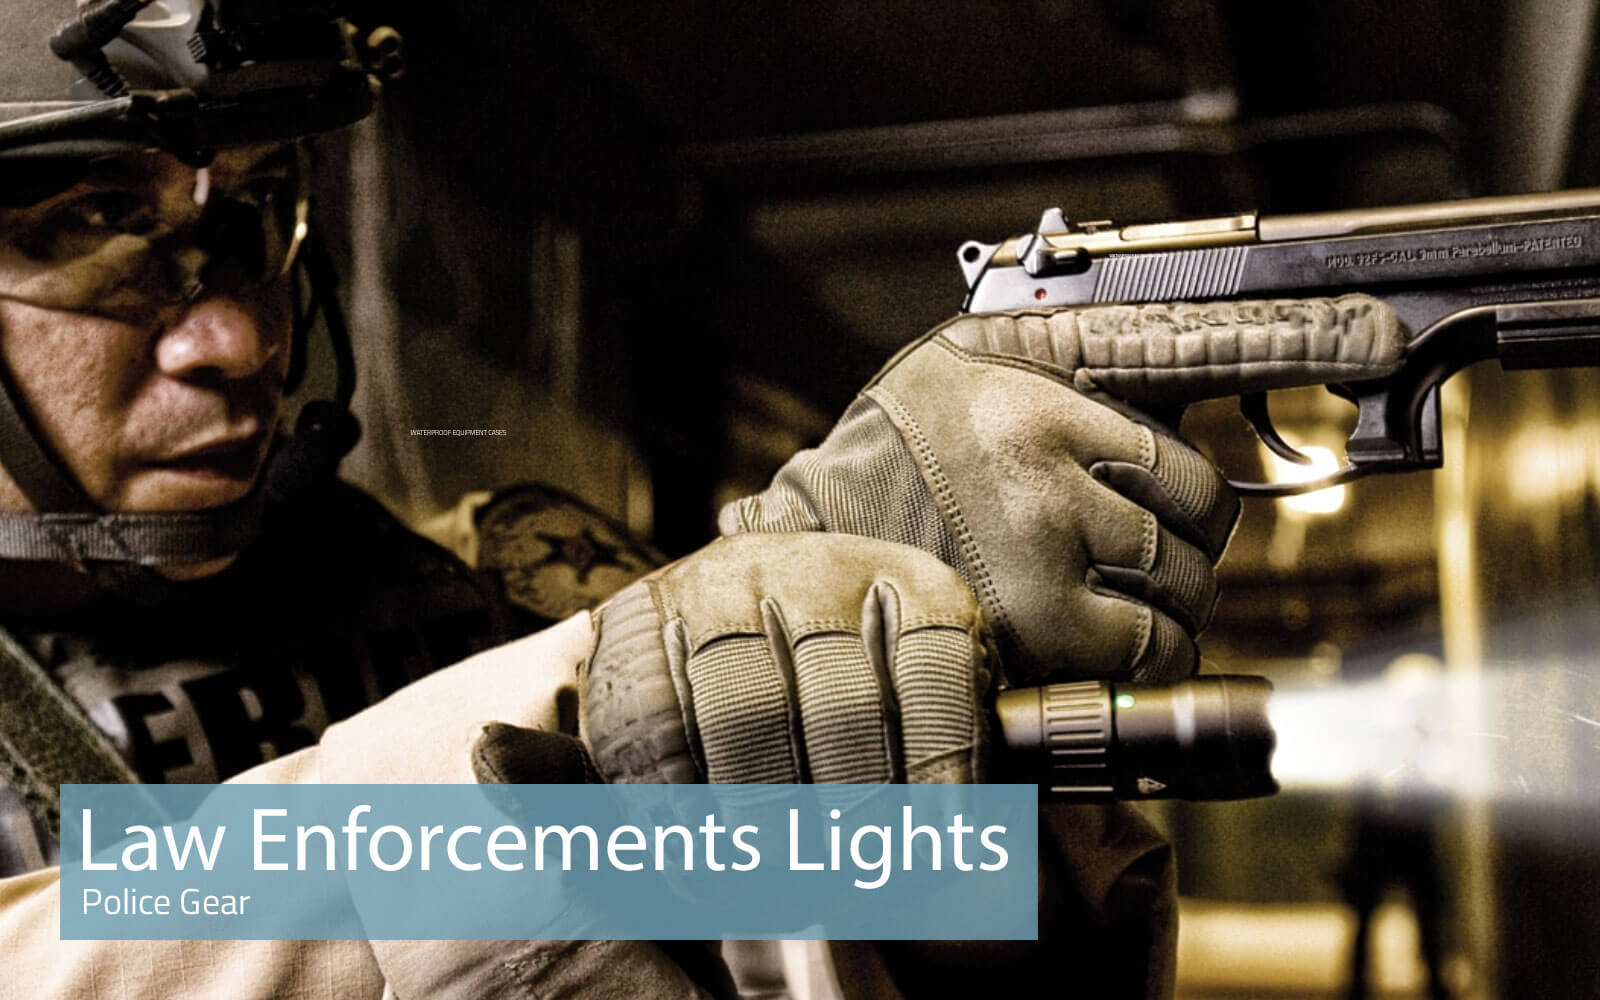 Peli Law Enforcements Lights